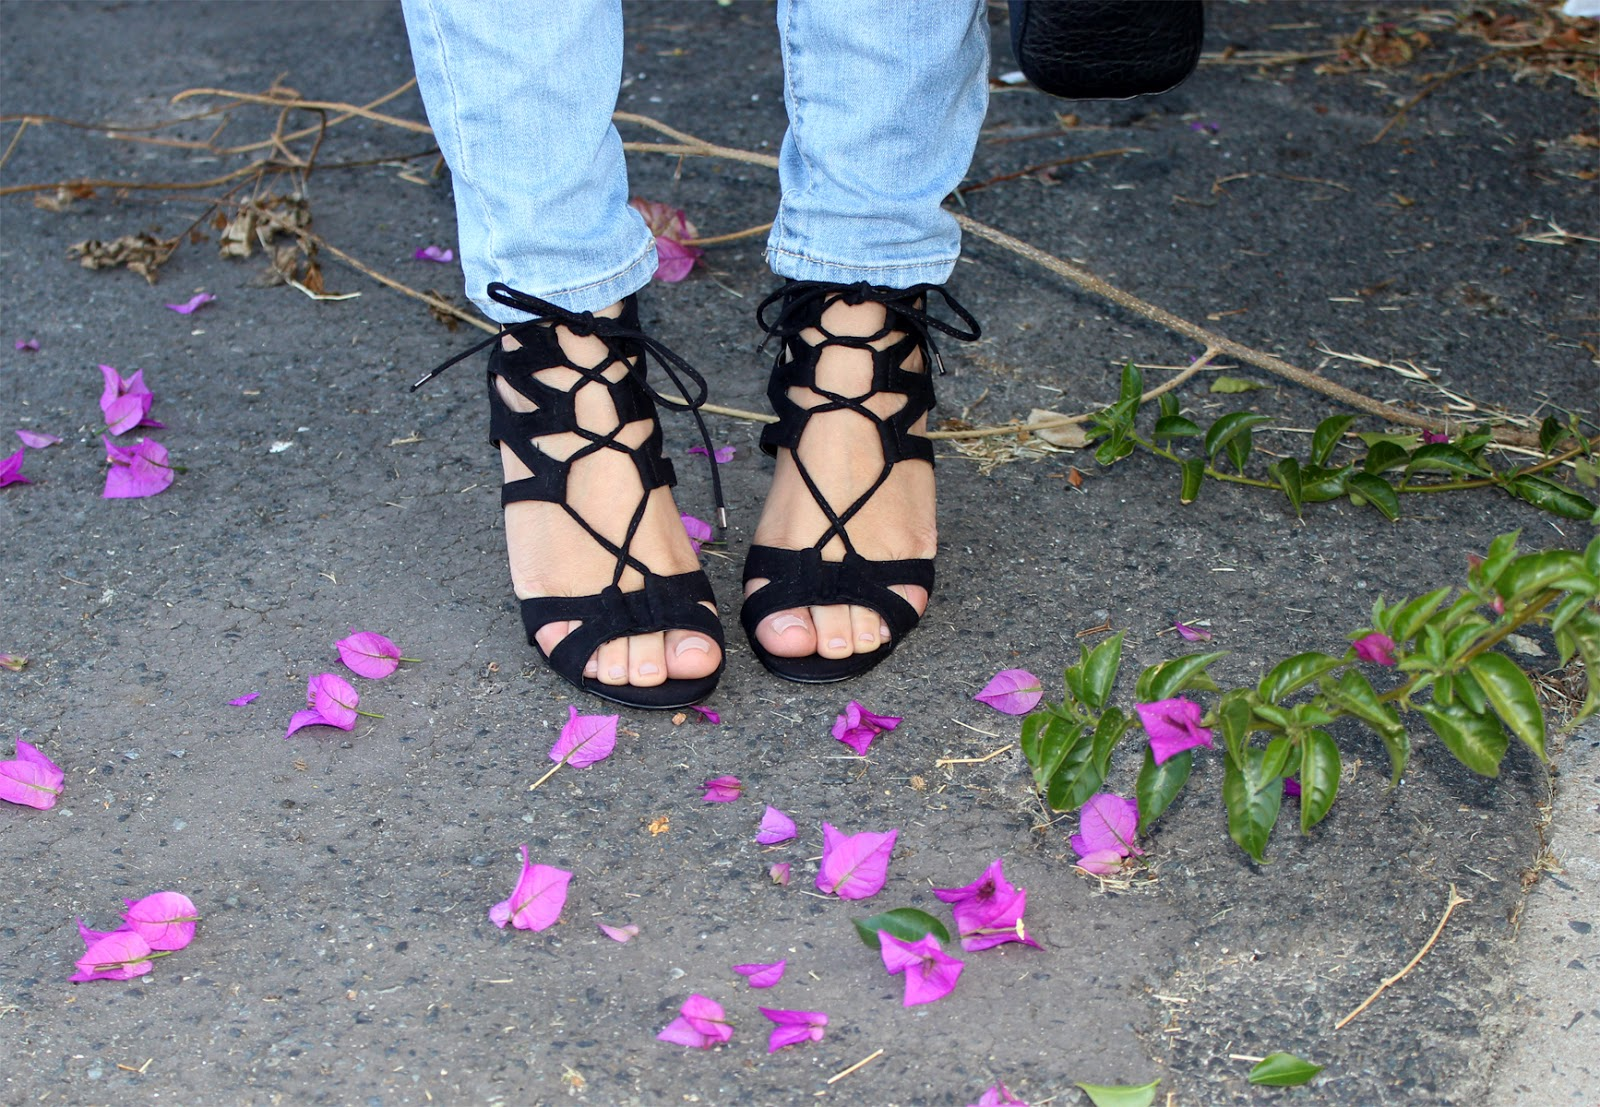 steve madden lace up heels, steve madden maiden, lace up heels south africa, fashion blogger south africa, cotton on skinny jeans, stylista, cotton on crop skinny boyfriend jeans, fashion blogger cape town, wet n wild sugar plum fairy, ray ban aviators oversize